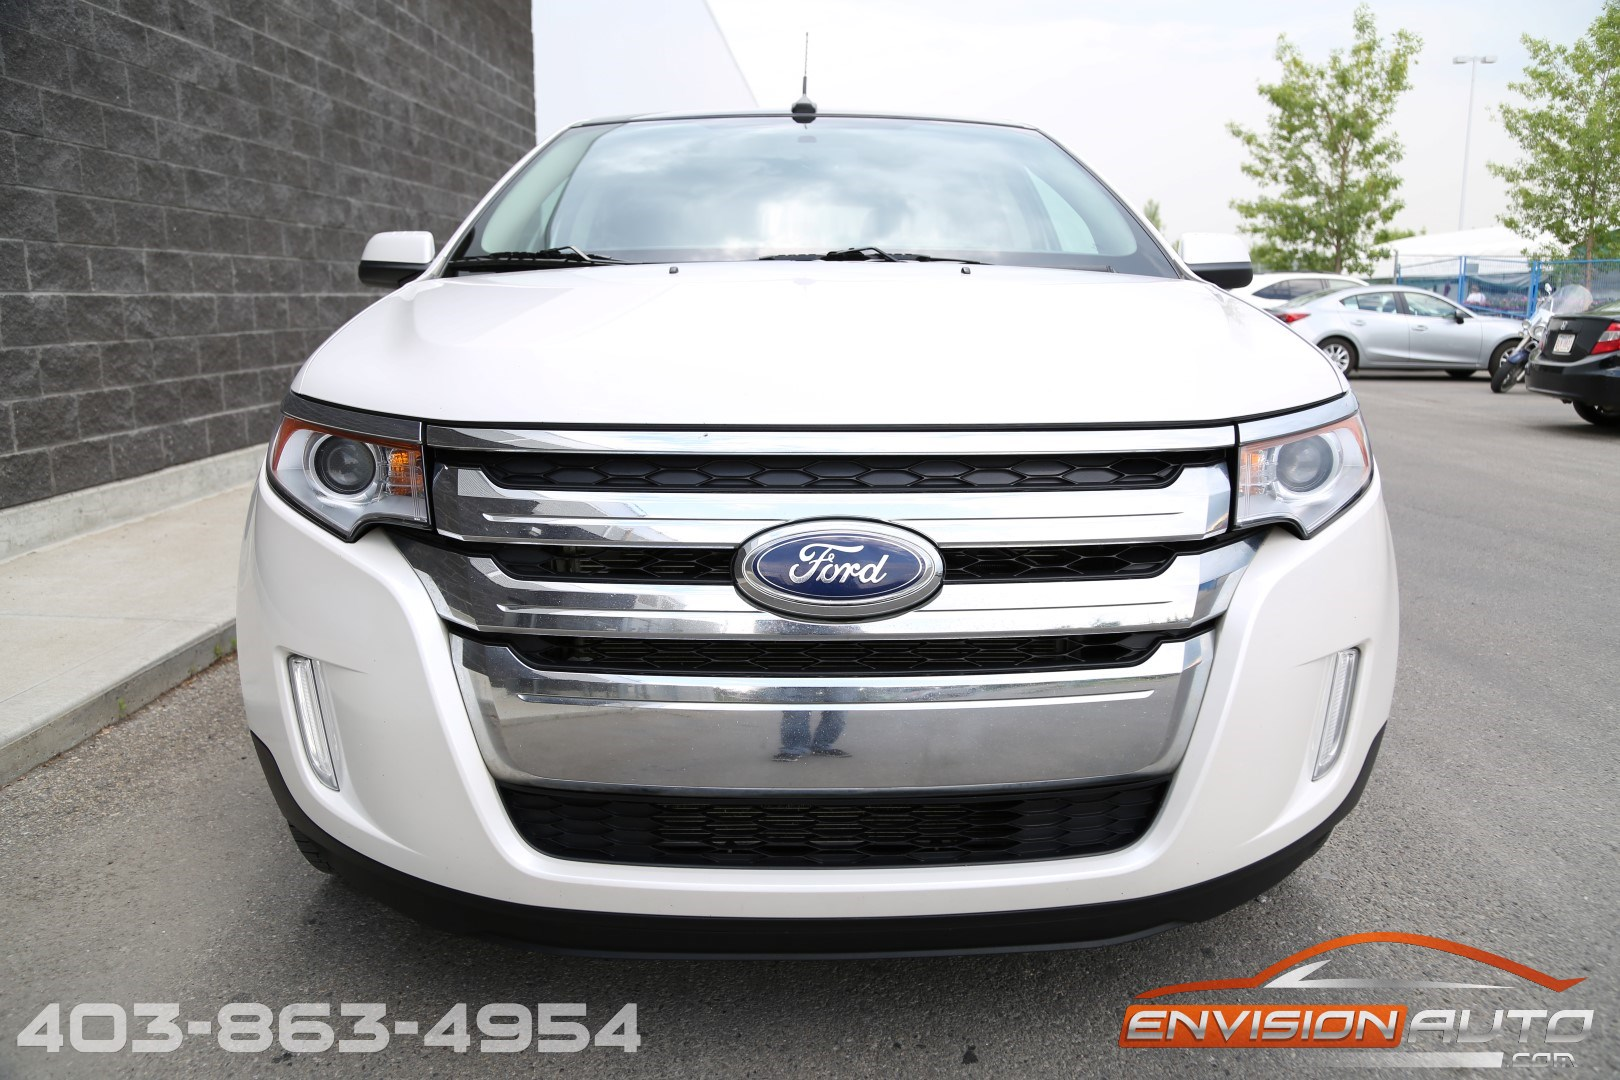 2011 ford edge sel all wheel drive 1 owner envision auto calgary highline luxury sports. Black Bedroom Furniture Sets. Home Design Ideas